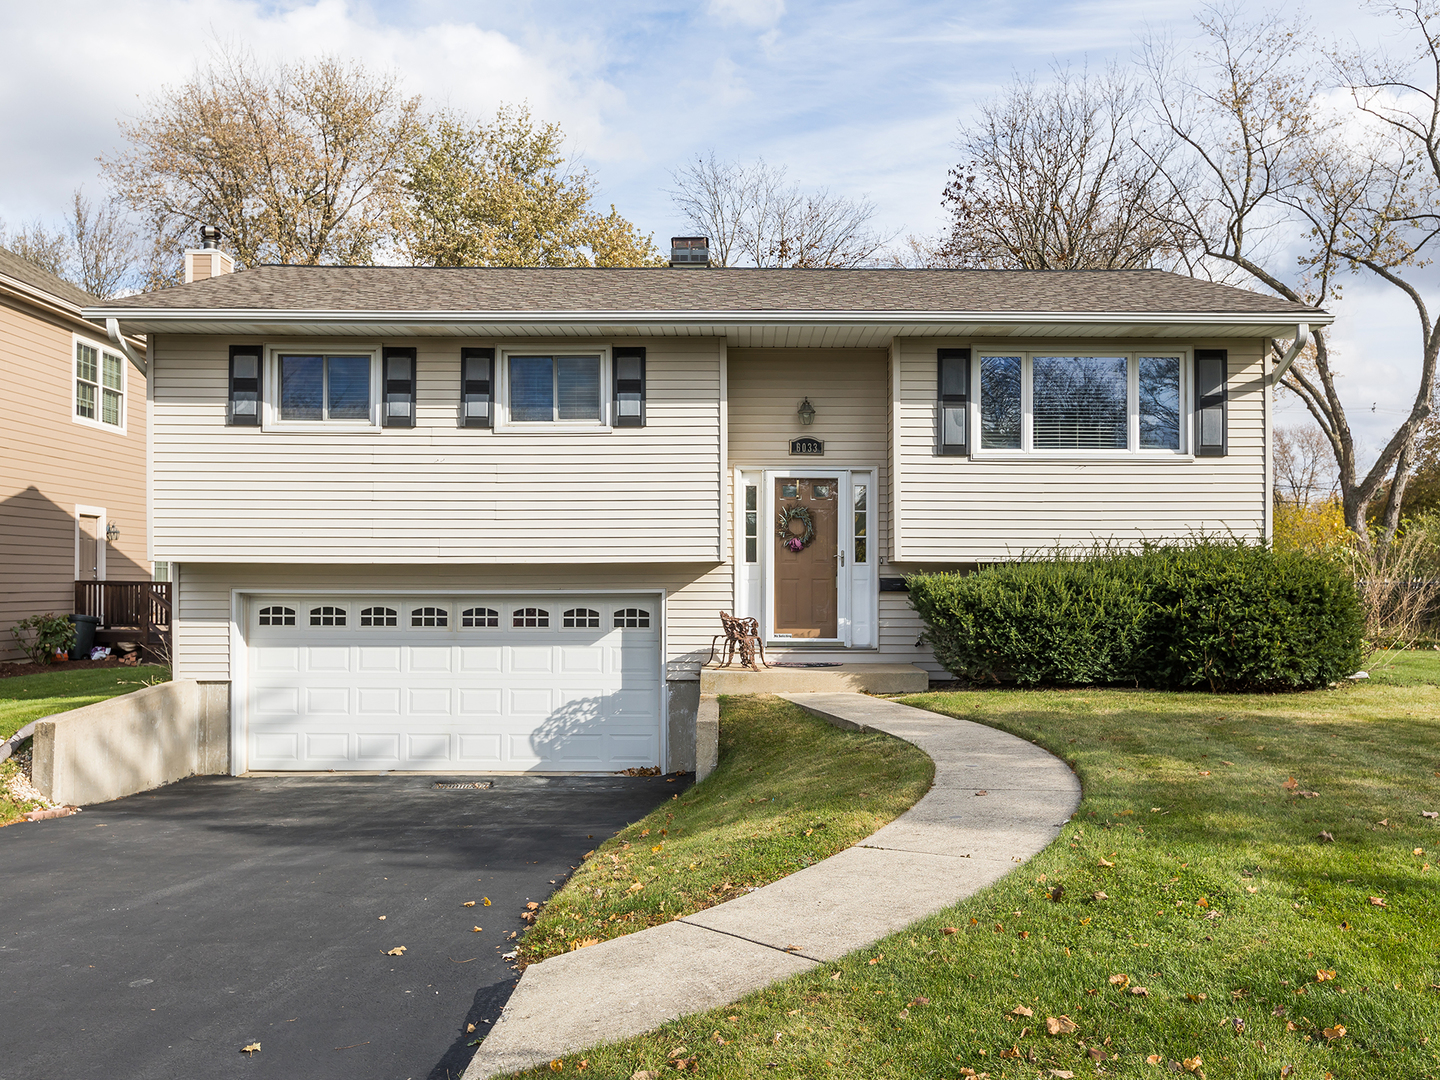 Photo for 6033 Blodgett Avenue, Downers Grove, IL 60516 (MLS # 10566825)